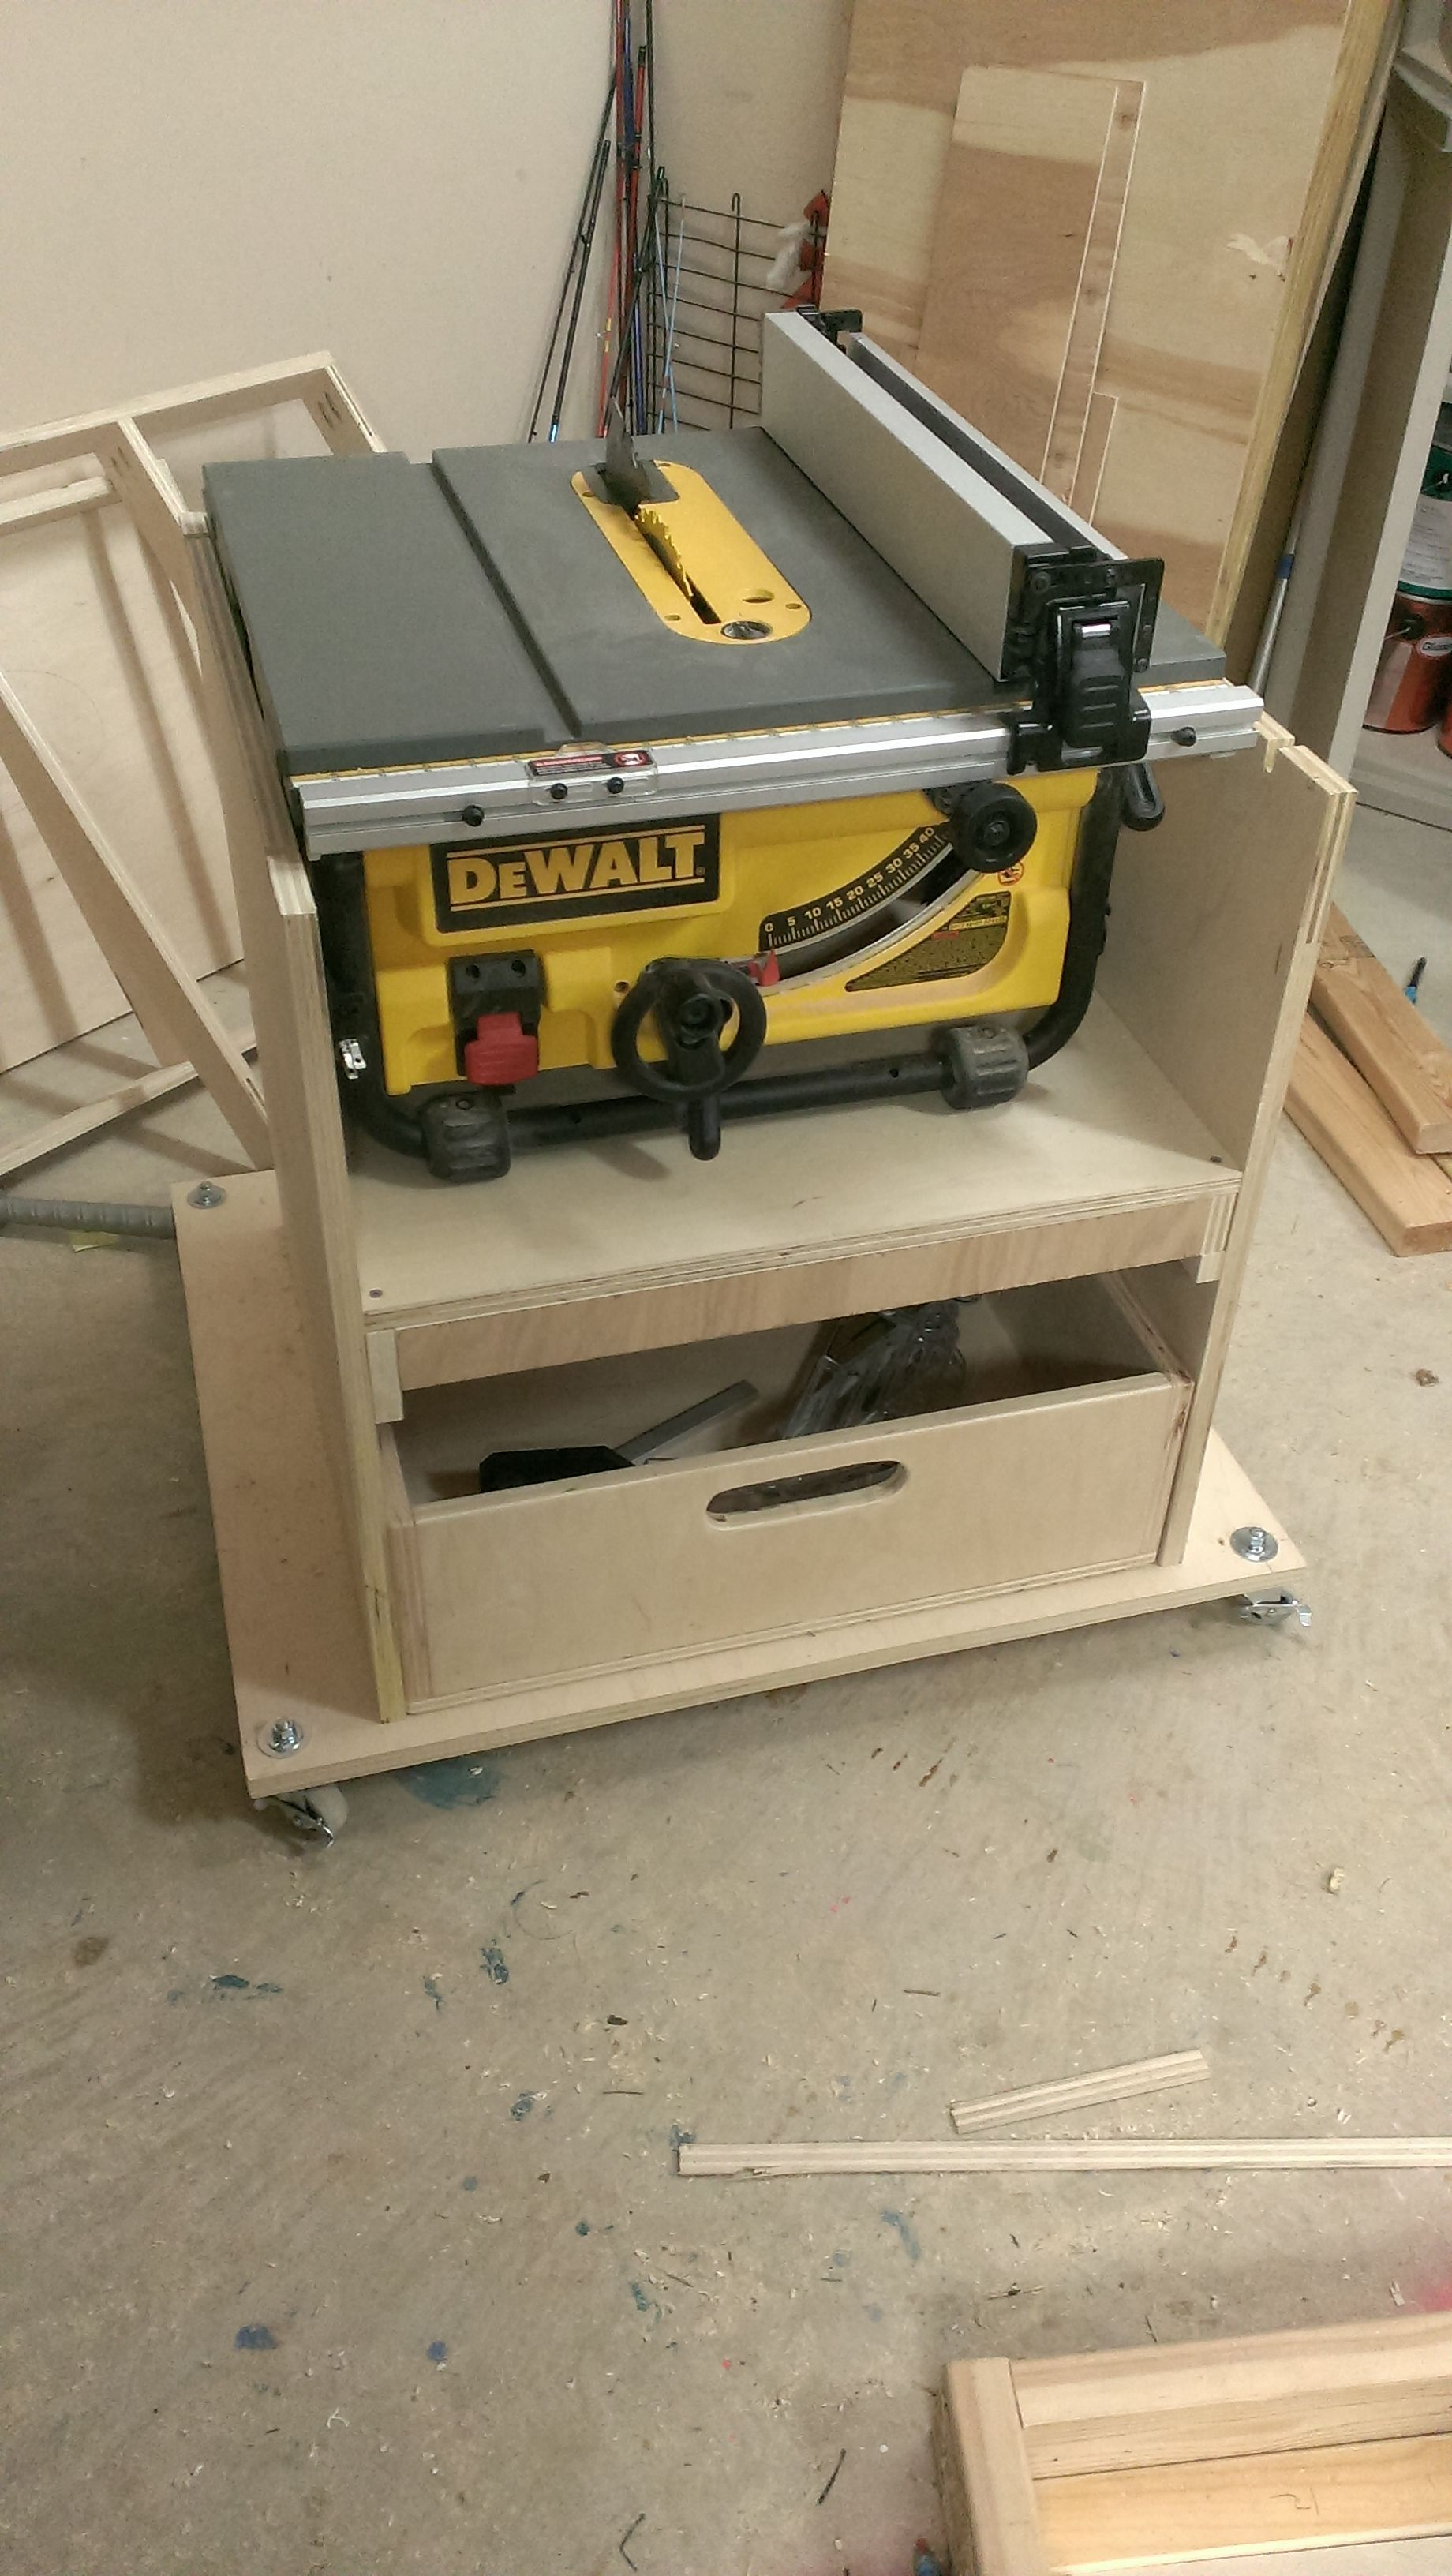 Mobile Stand For My New Table Saw 2014 03 23 20 28 45 Jpg Diy Table Saw Portable Table Saw Table Saw